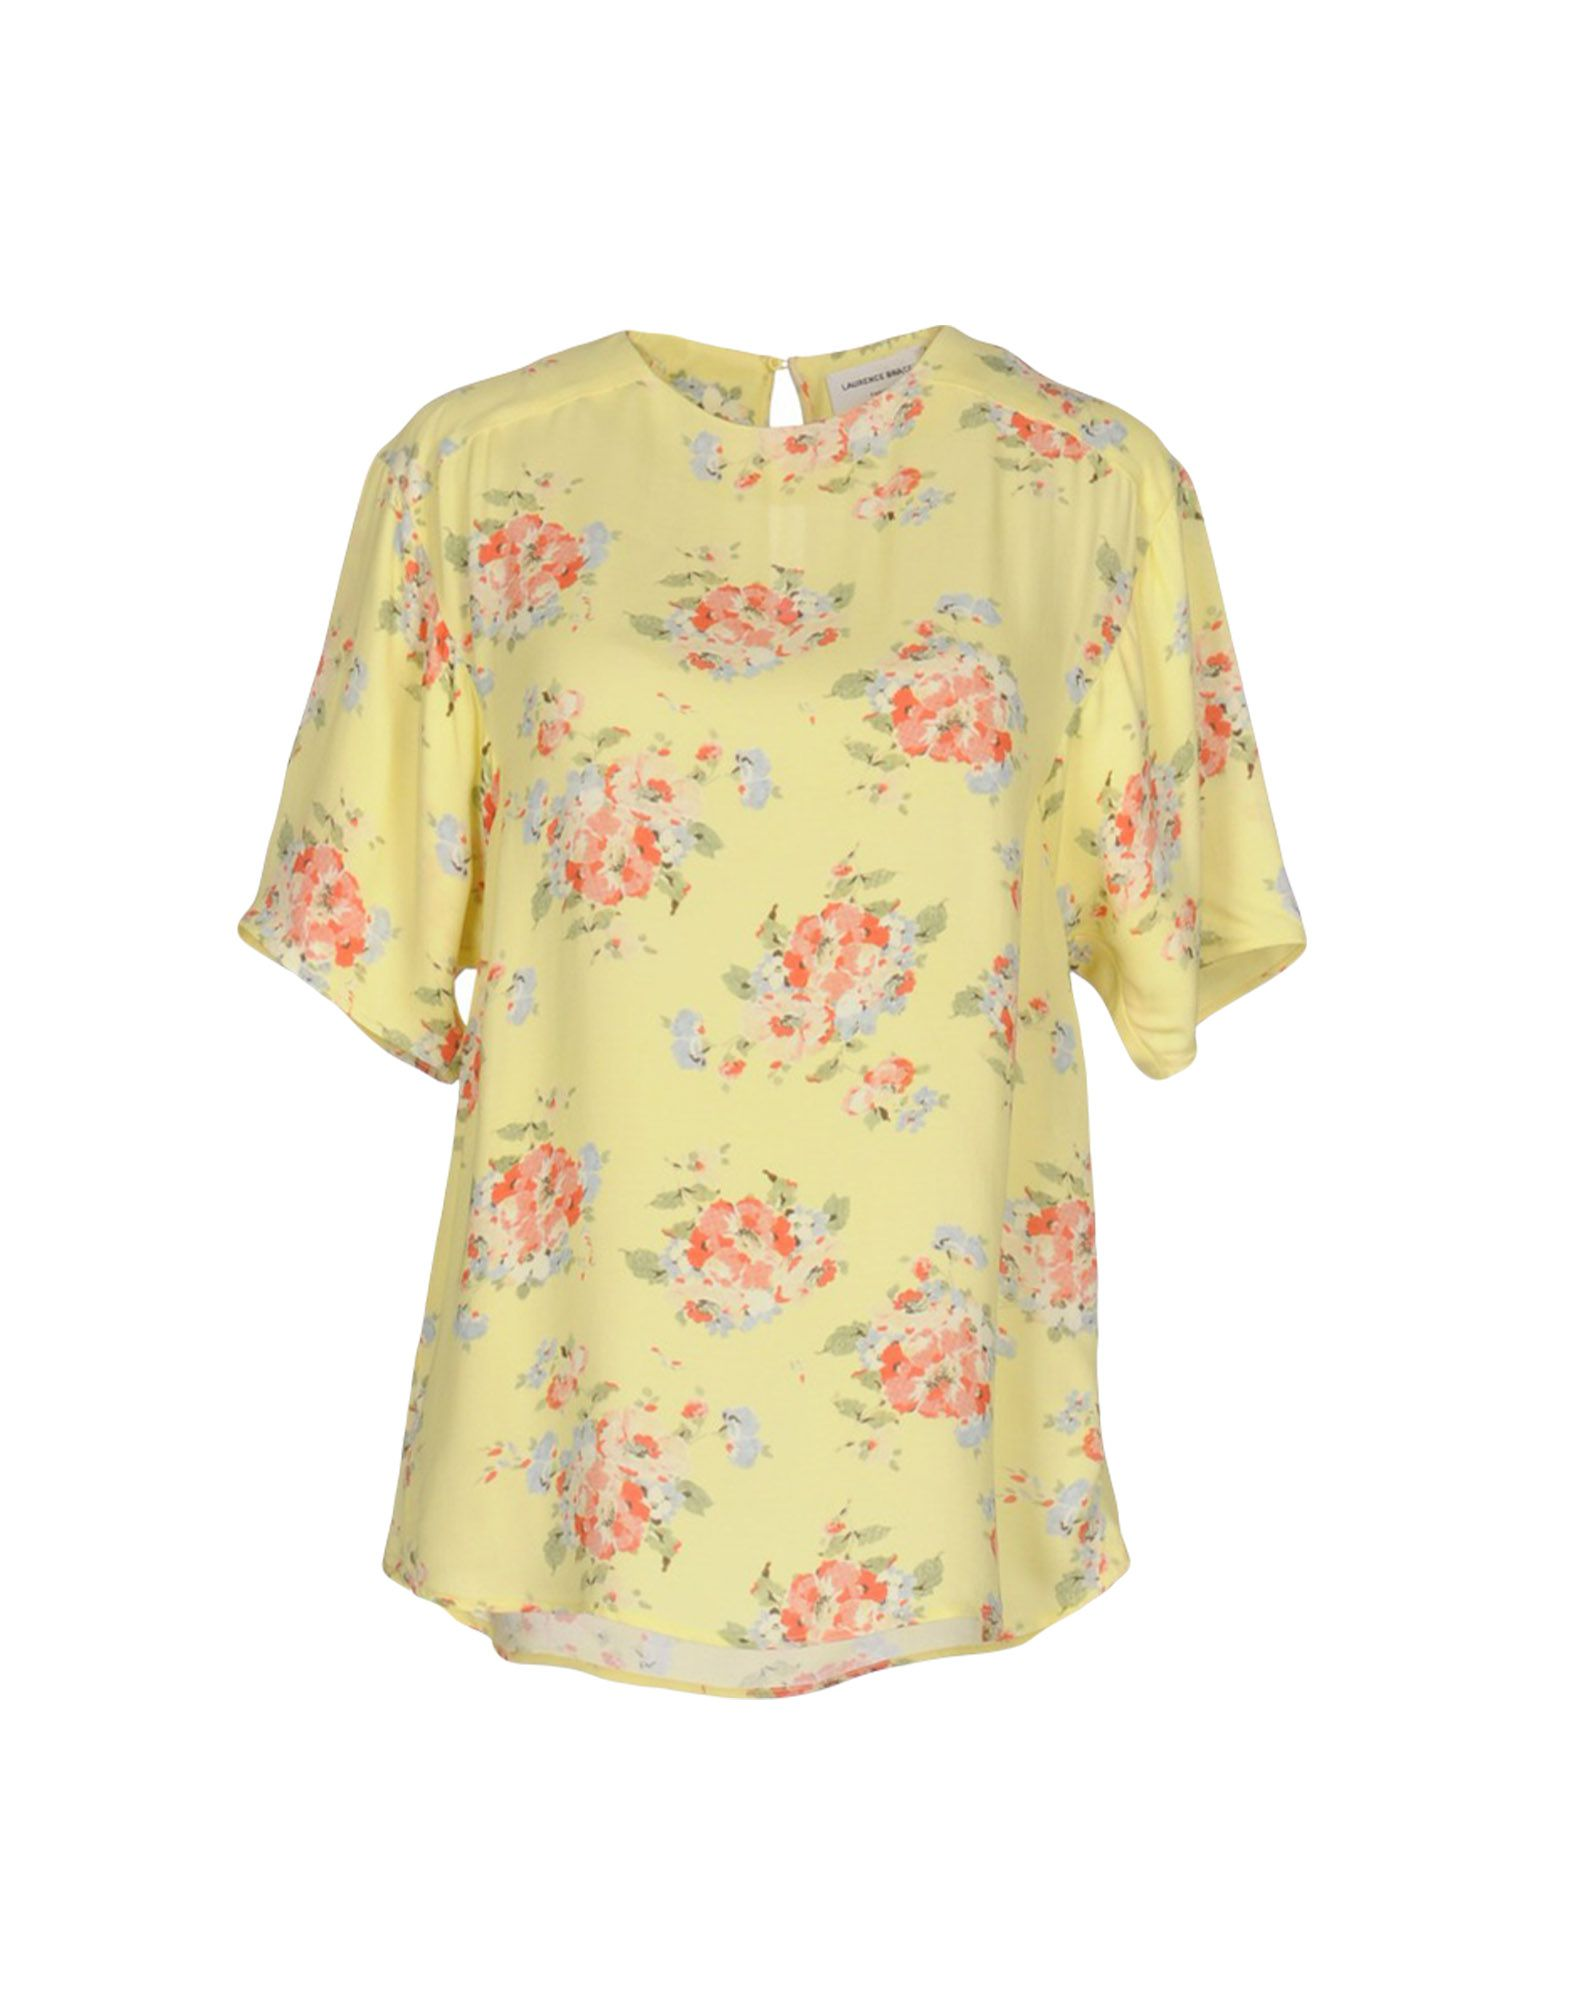 LAURENCE BRAS Blouse in Yellow